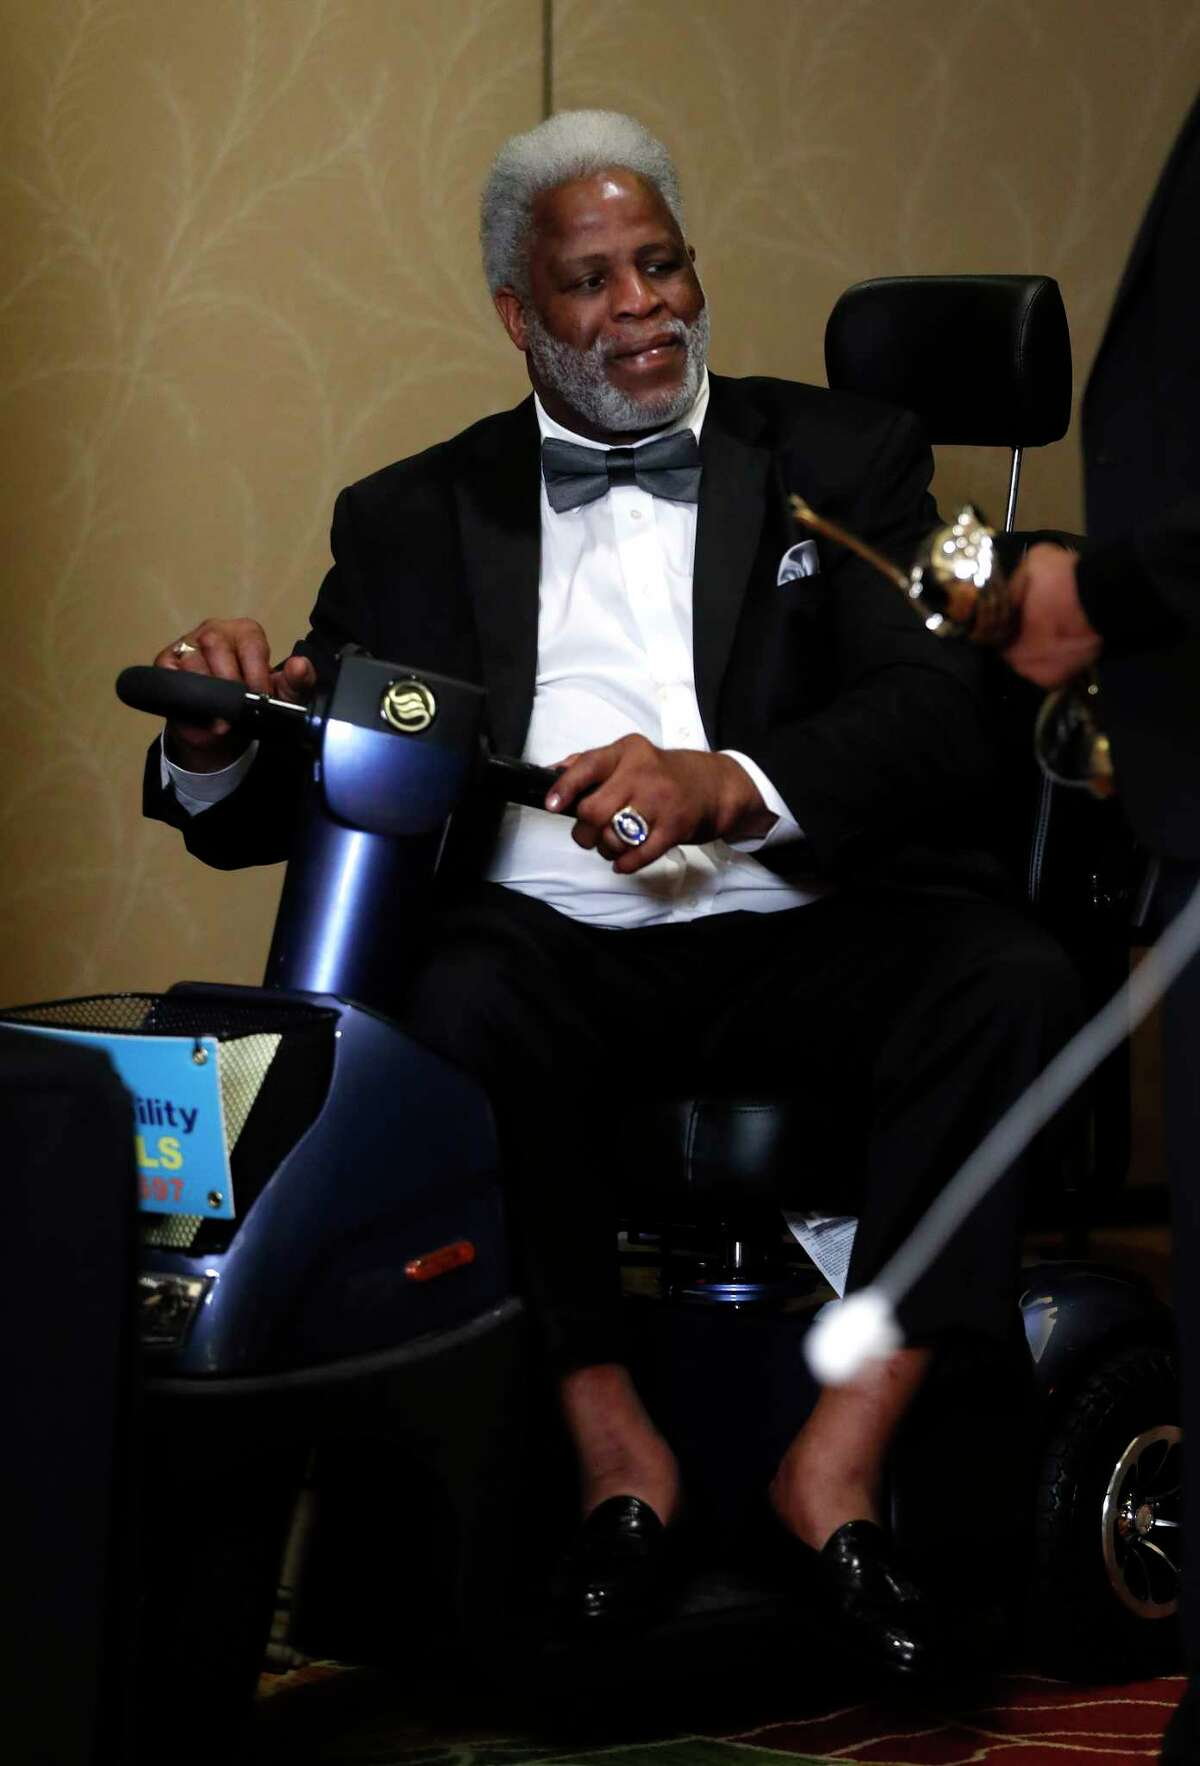 Earl Campbell and Houston's 34s Nolan Ryan and Hakeem Olajuwon got together during a press conference after the Houston Sports Awards at the Hilton Americas, Thursday, Feb. 8, 2018, in Houston.